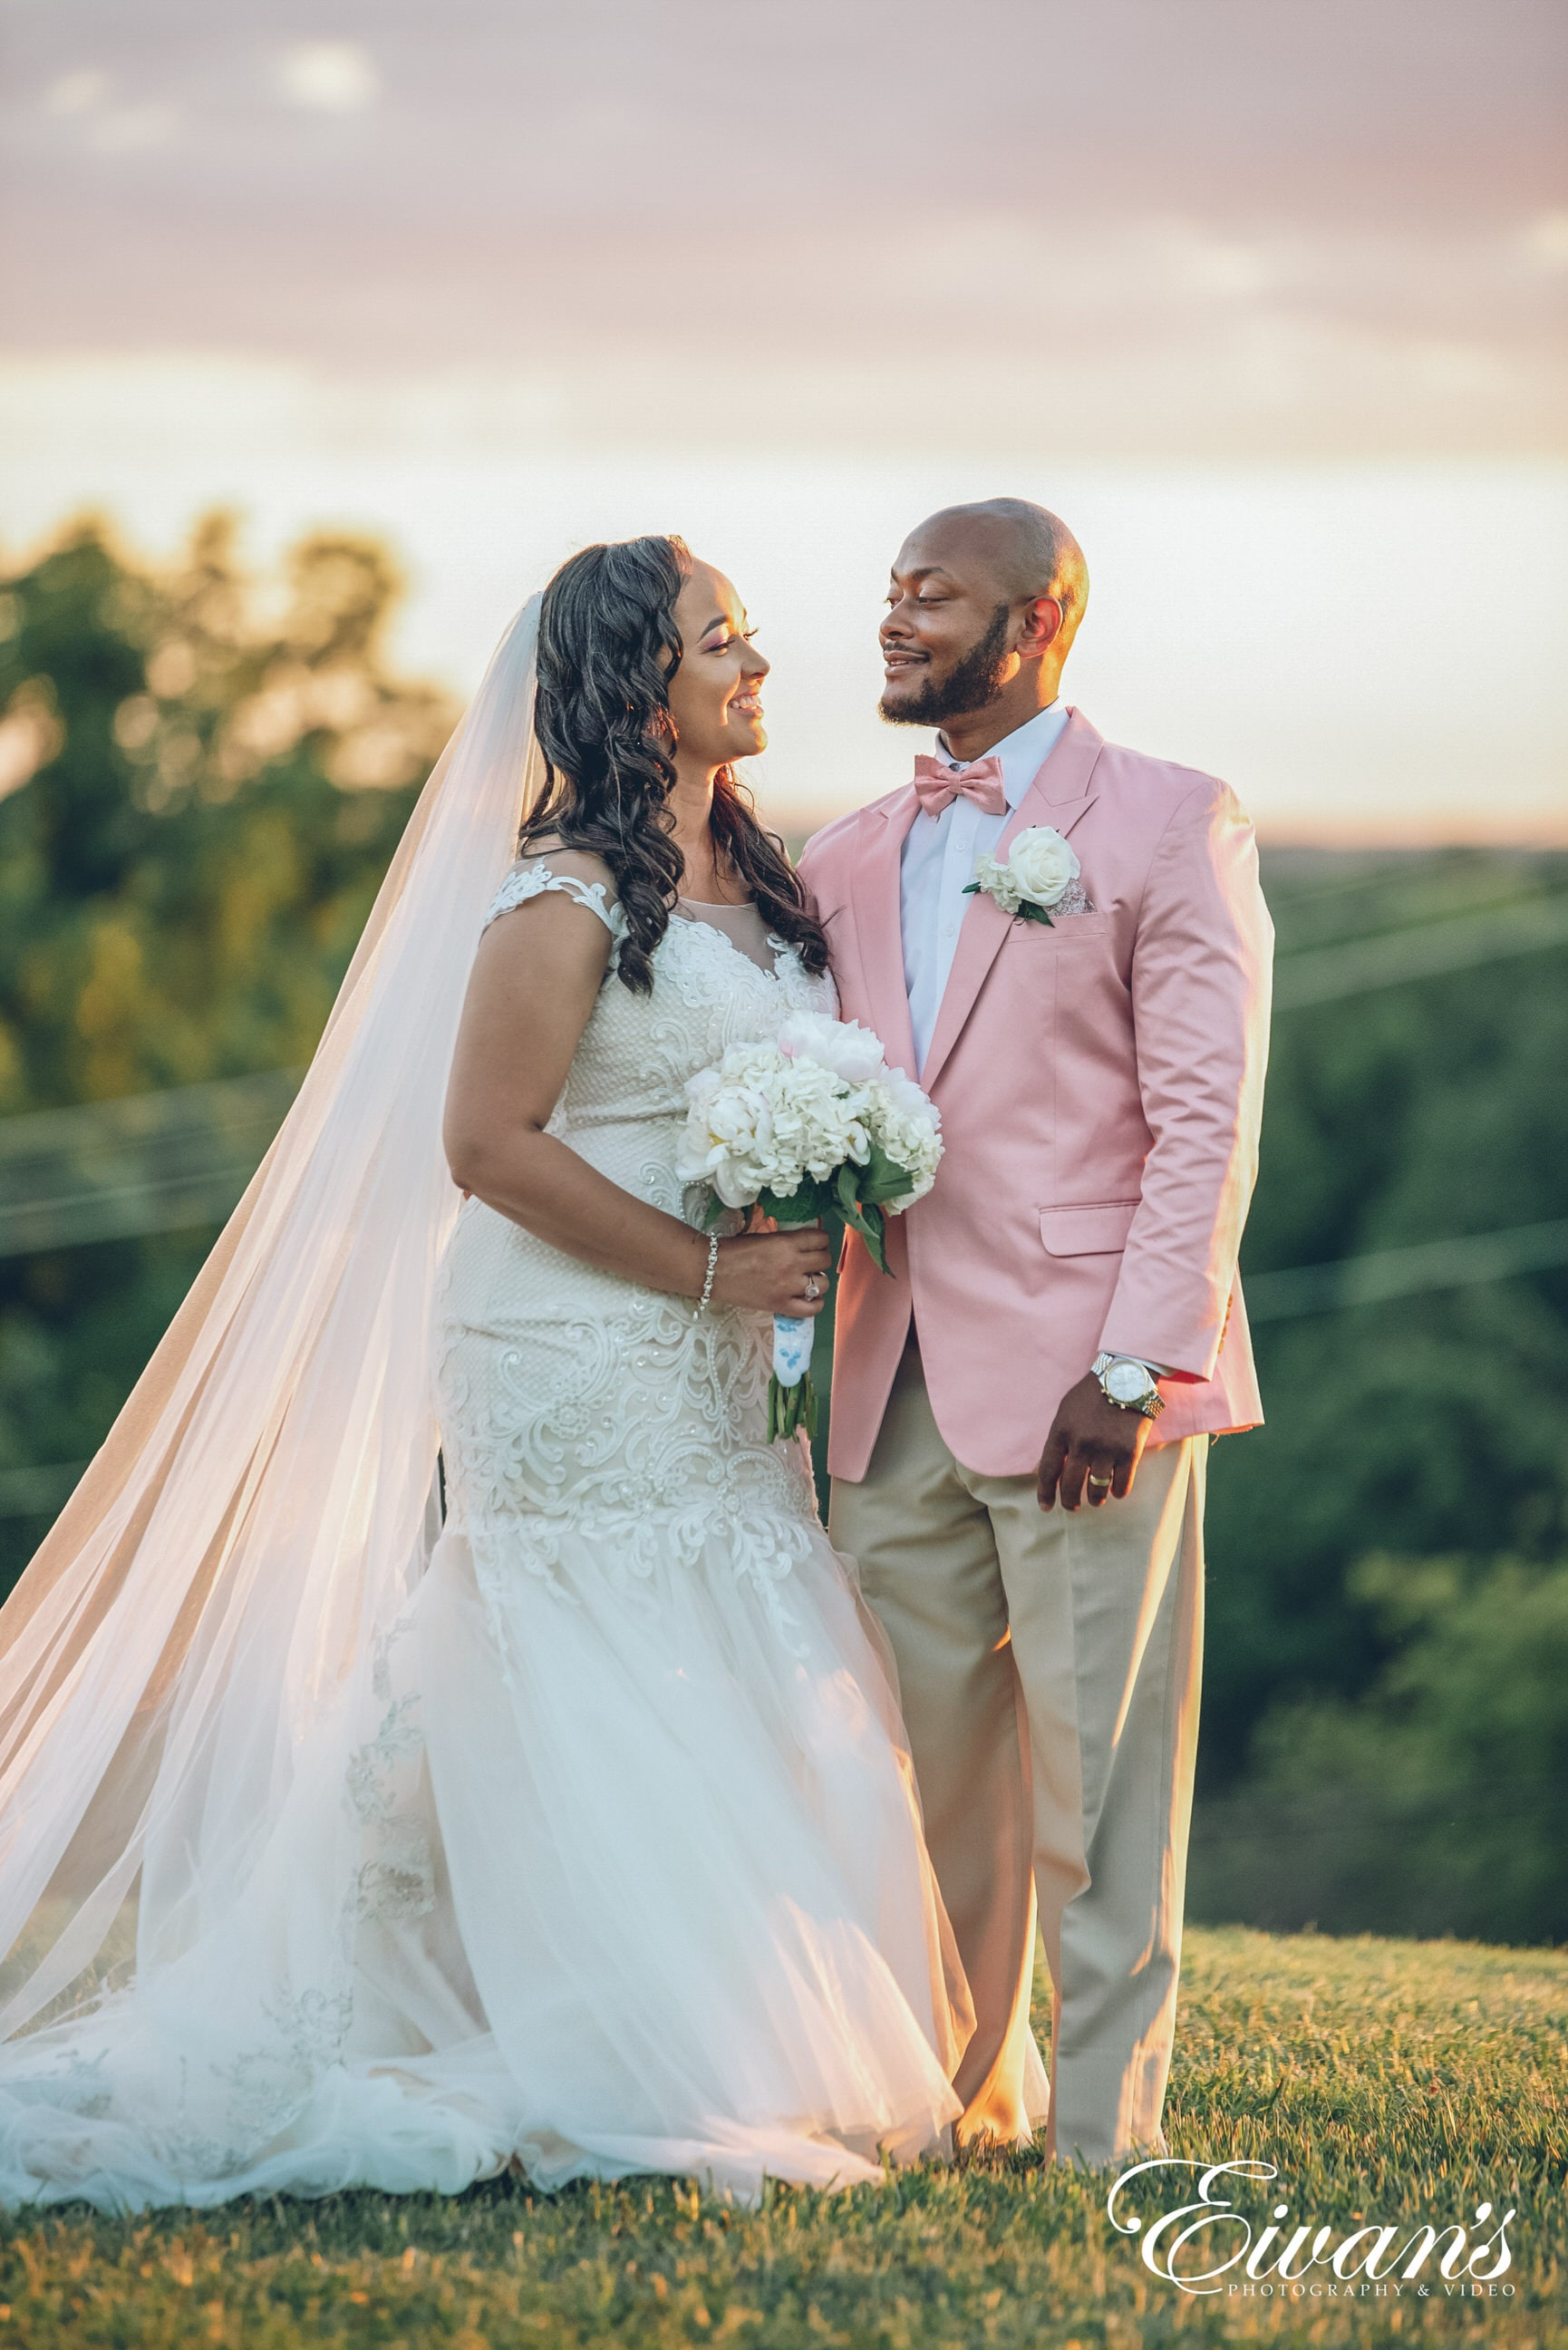 man in brown suit and woman in white wedding dress